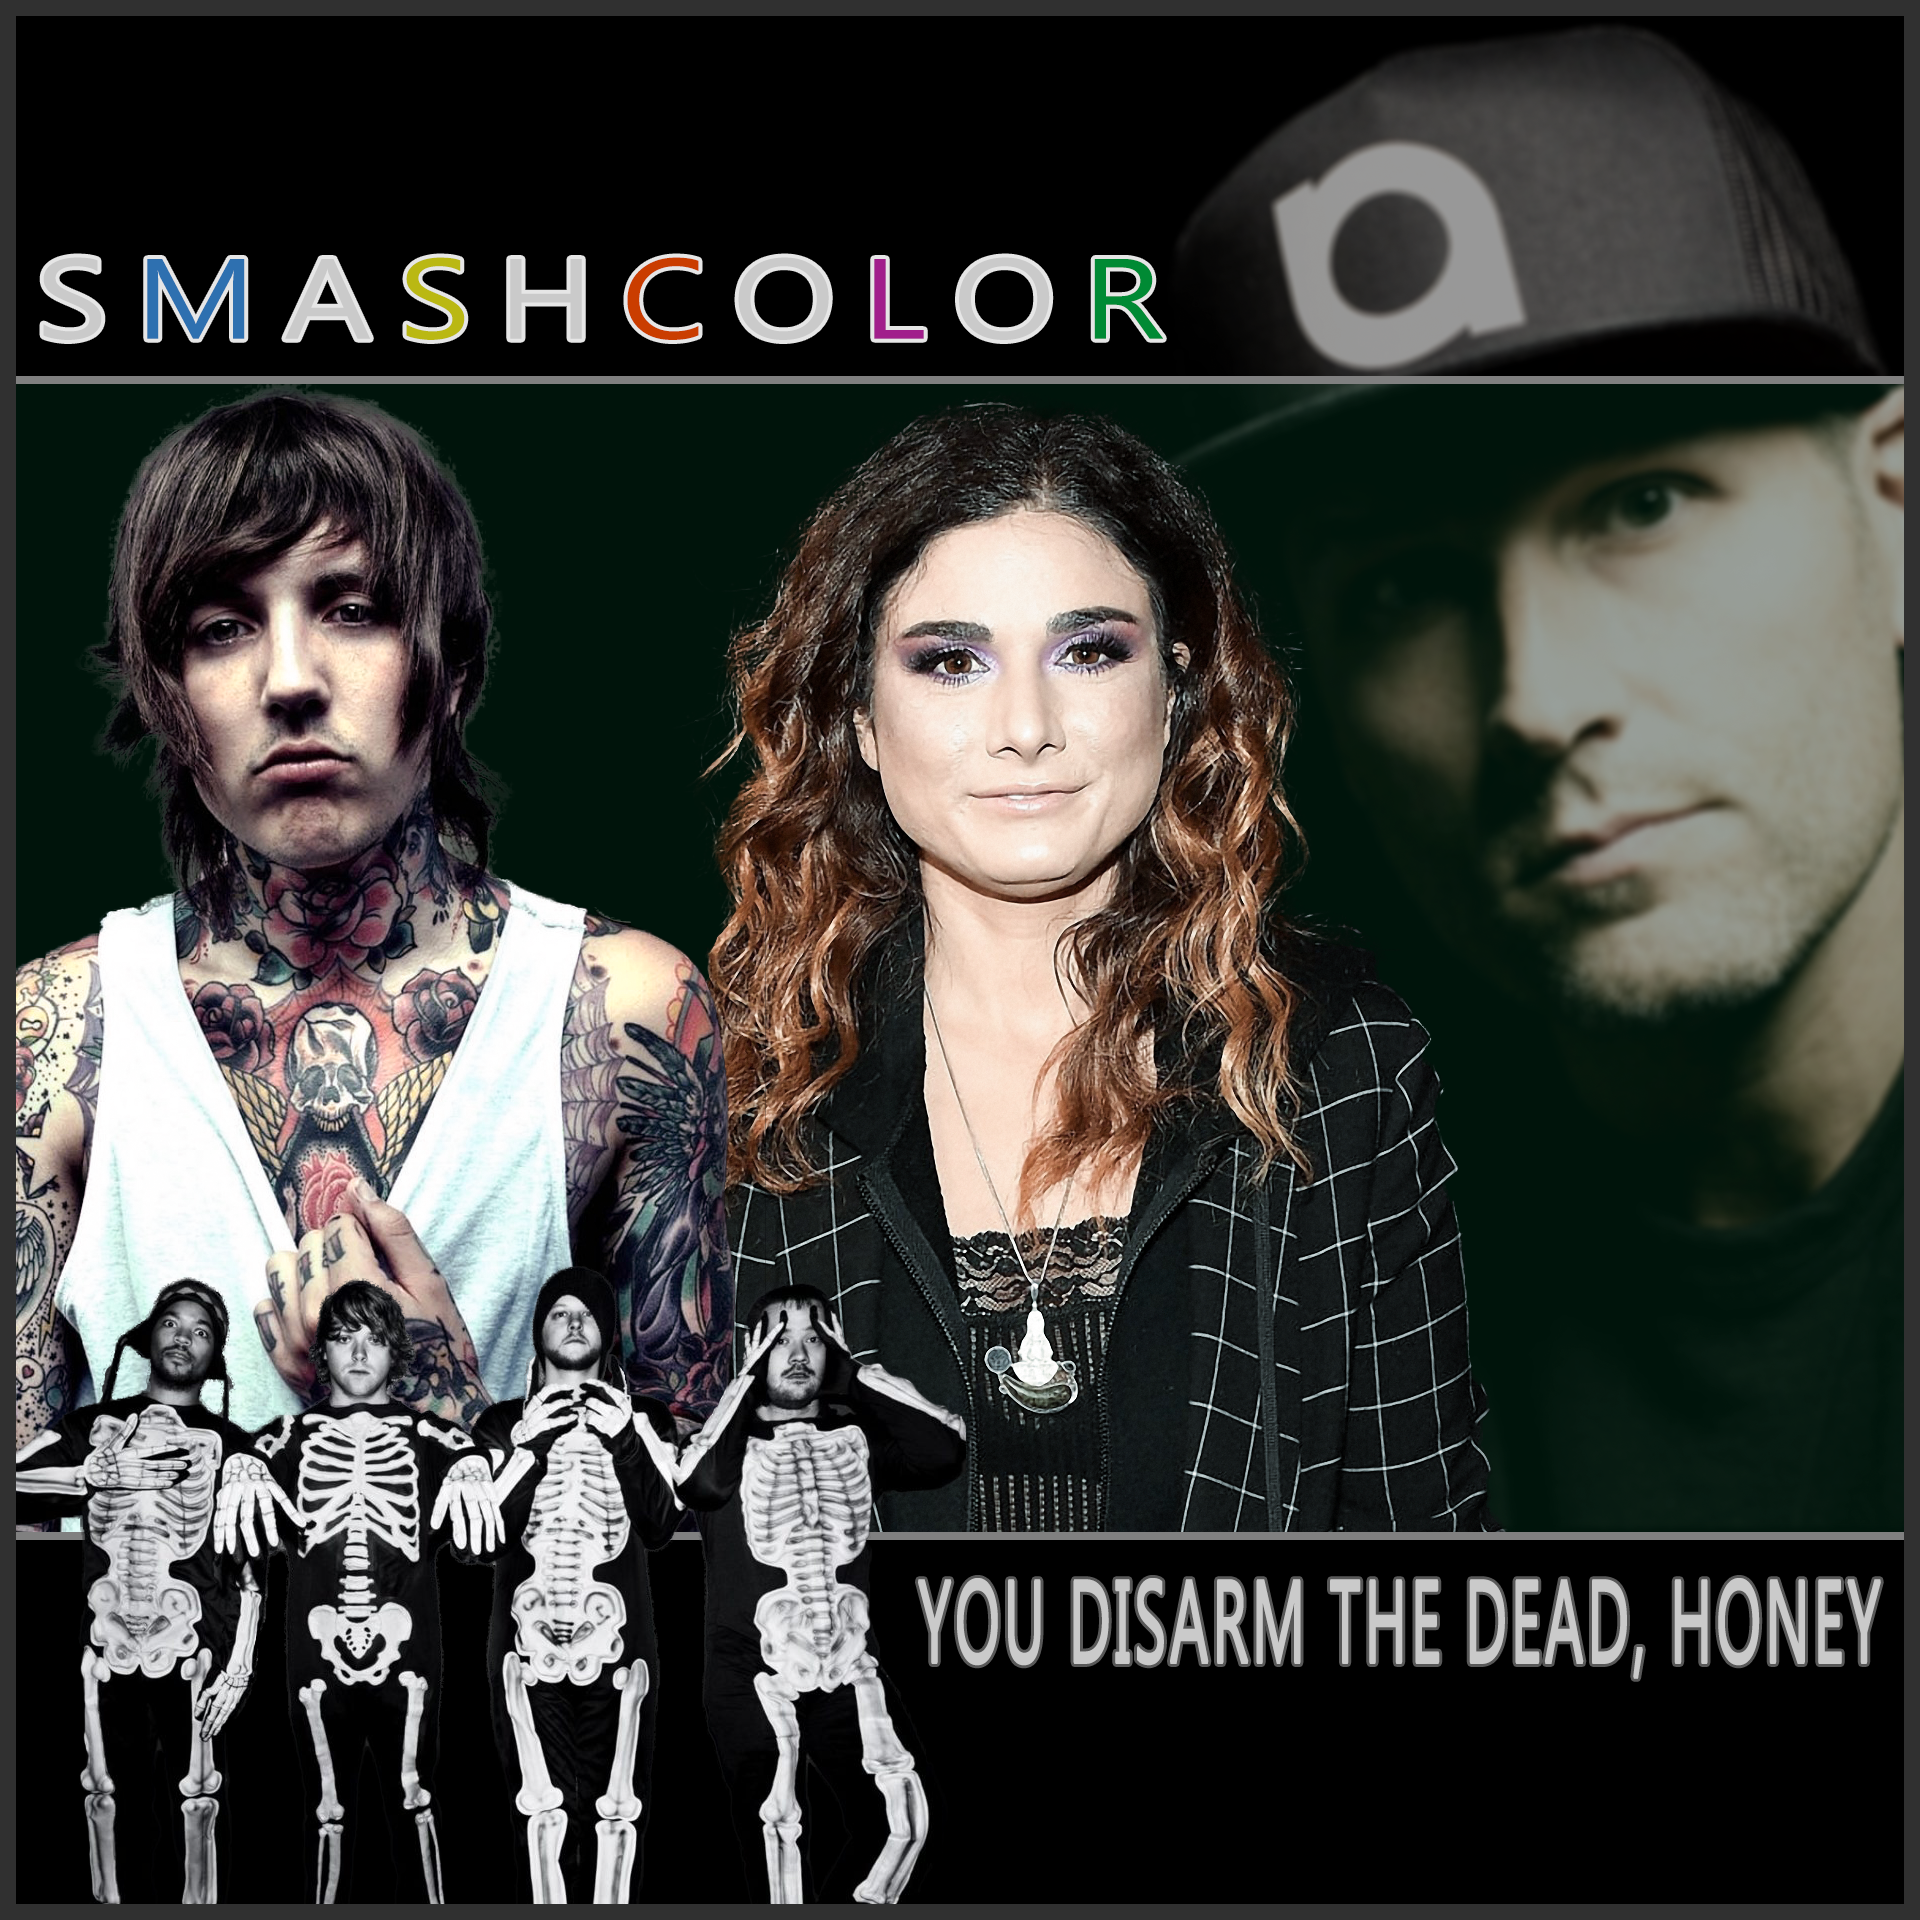 You Disarm the Dead, Honey [Does It Offend You, Yeah? x Kaskade ft. Ilsey x Bring Me the Horizon]